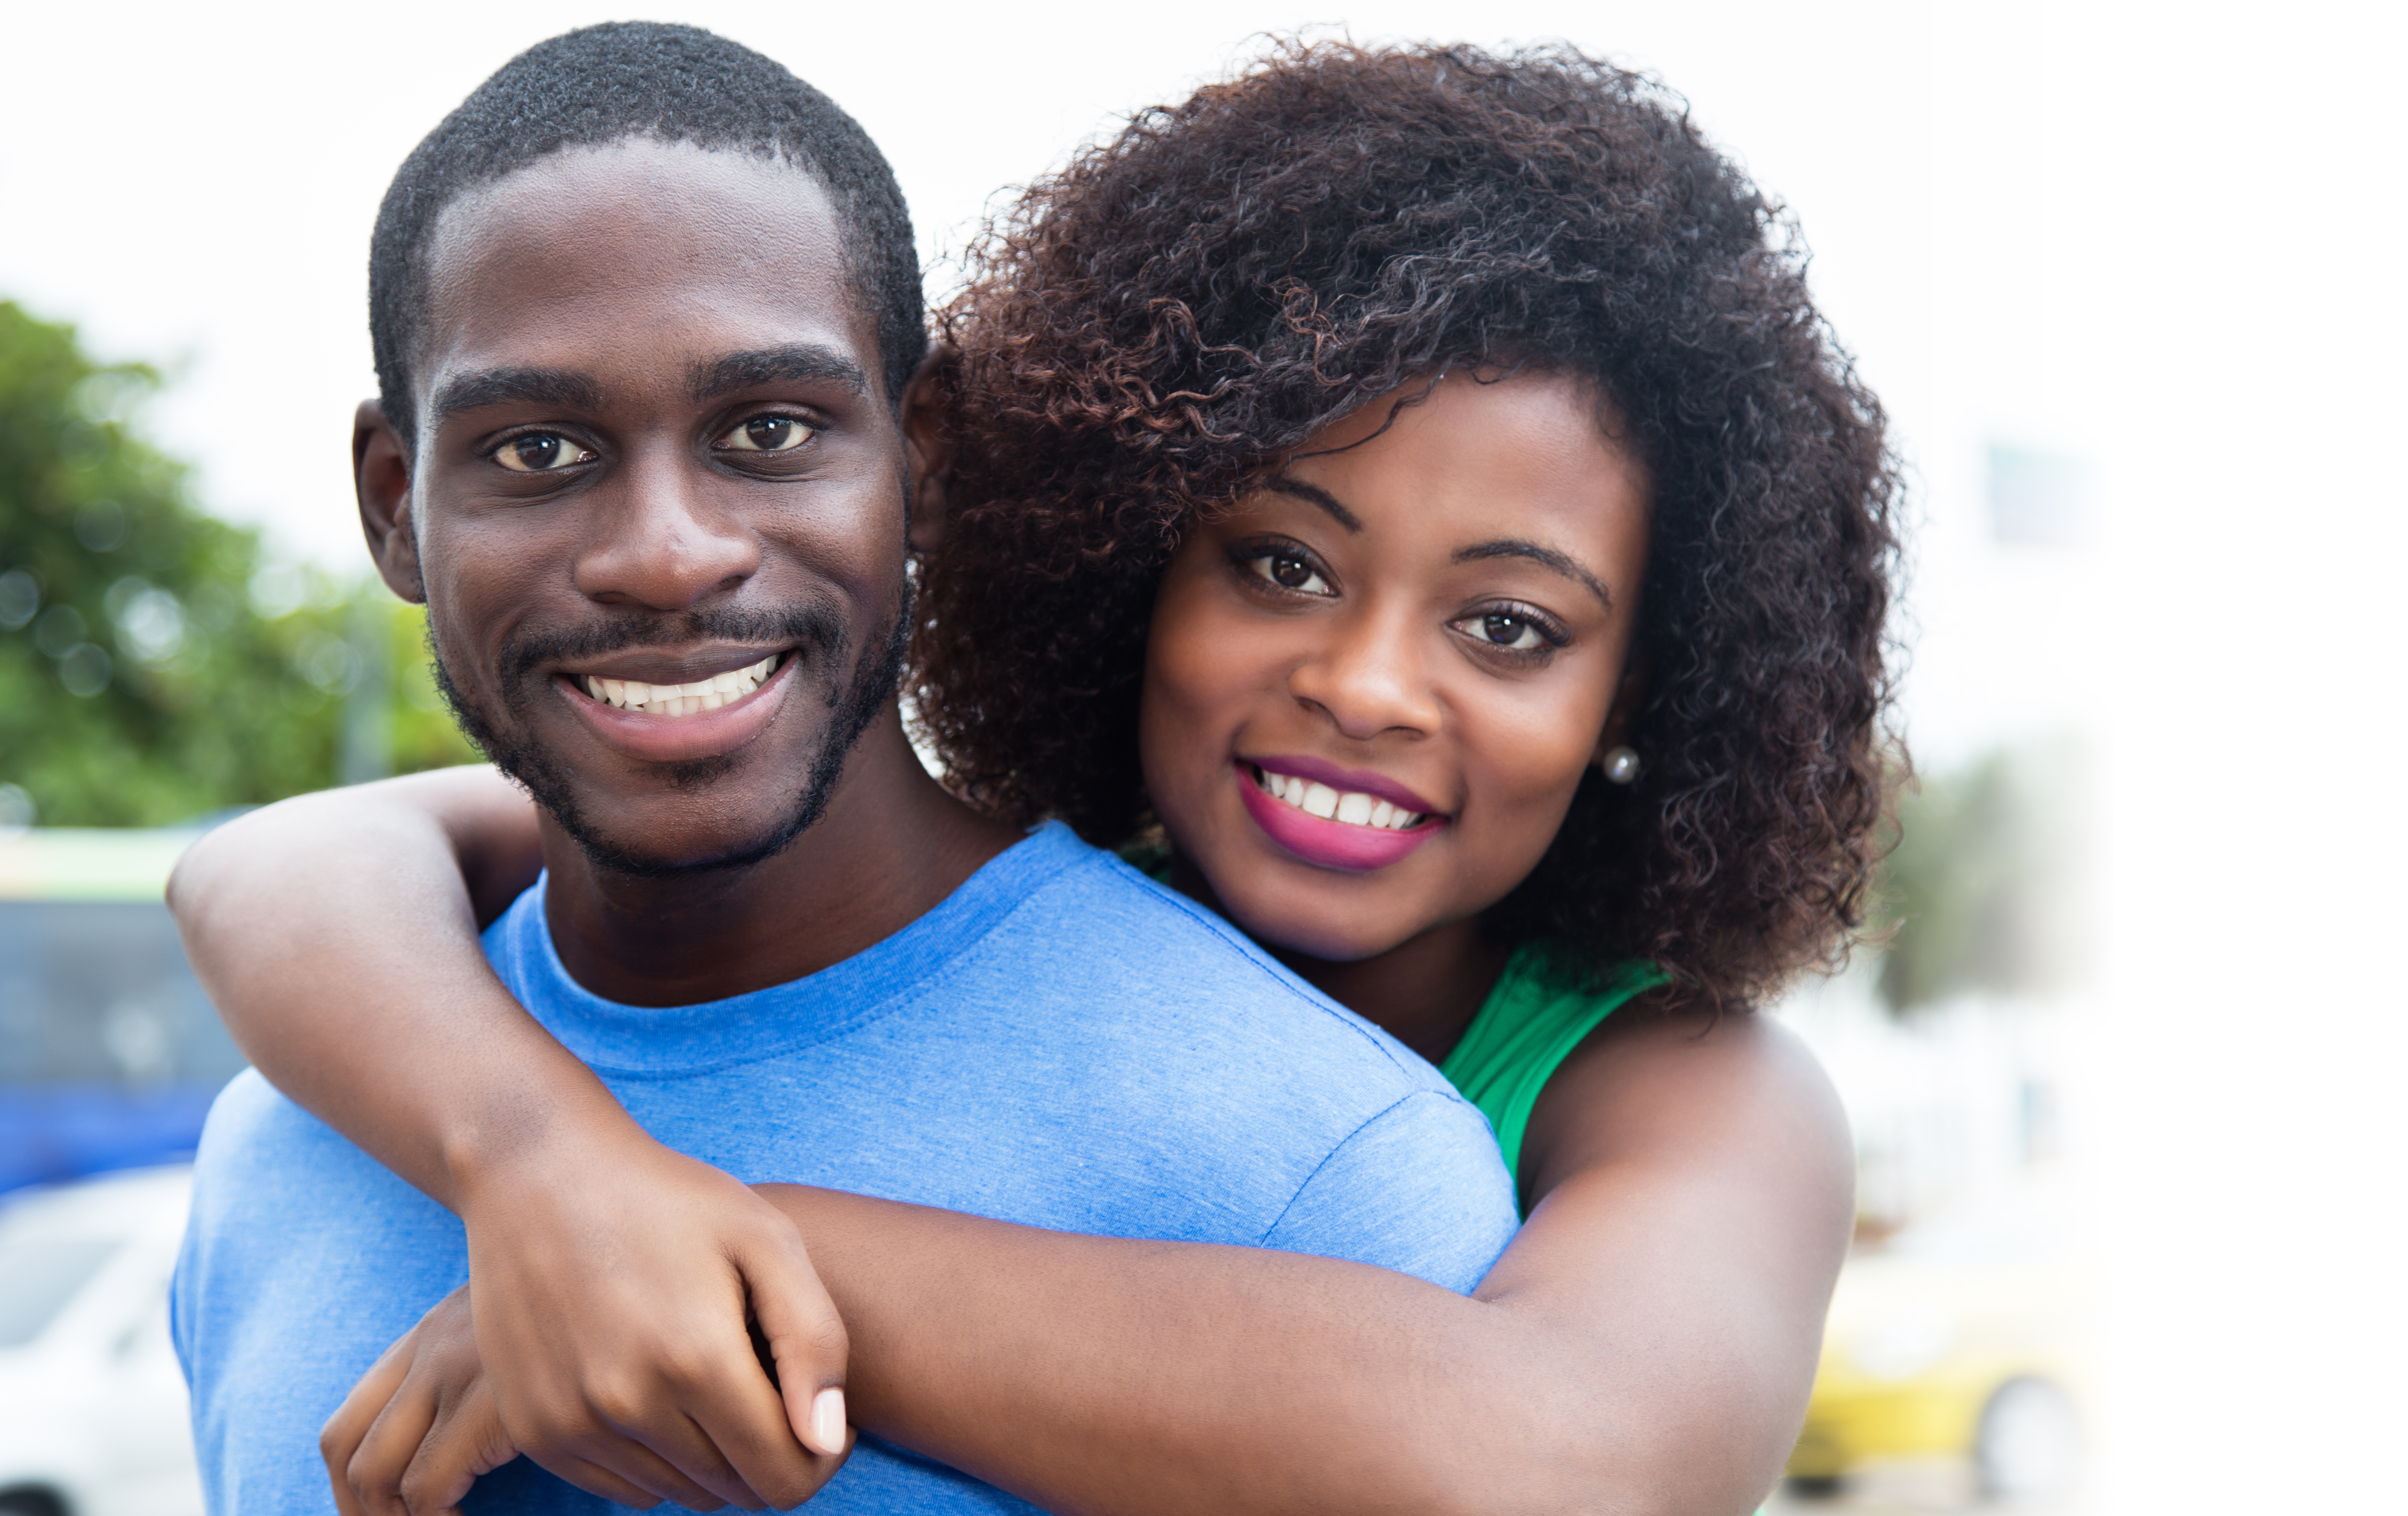 African_Couple_Vignette